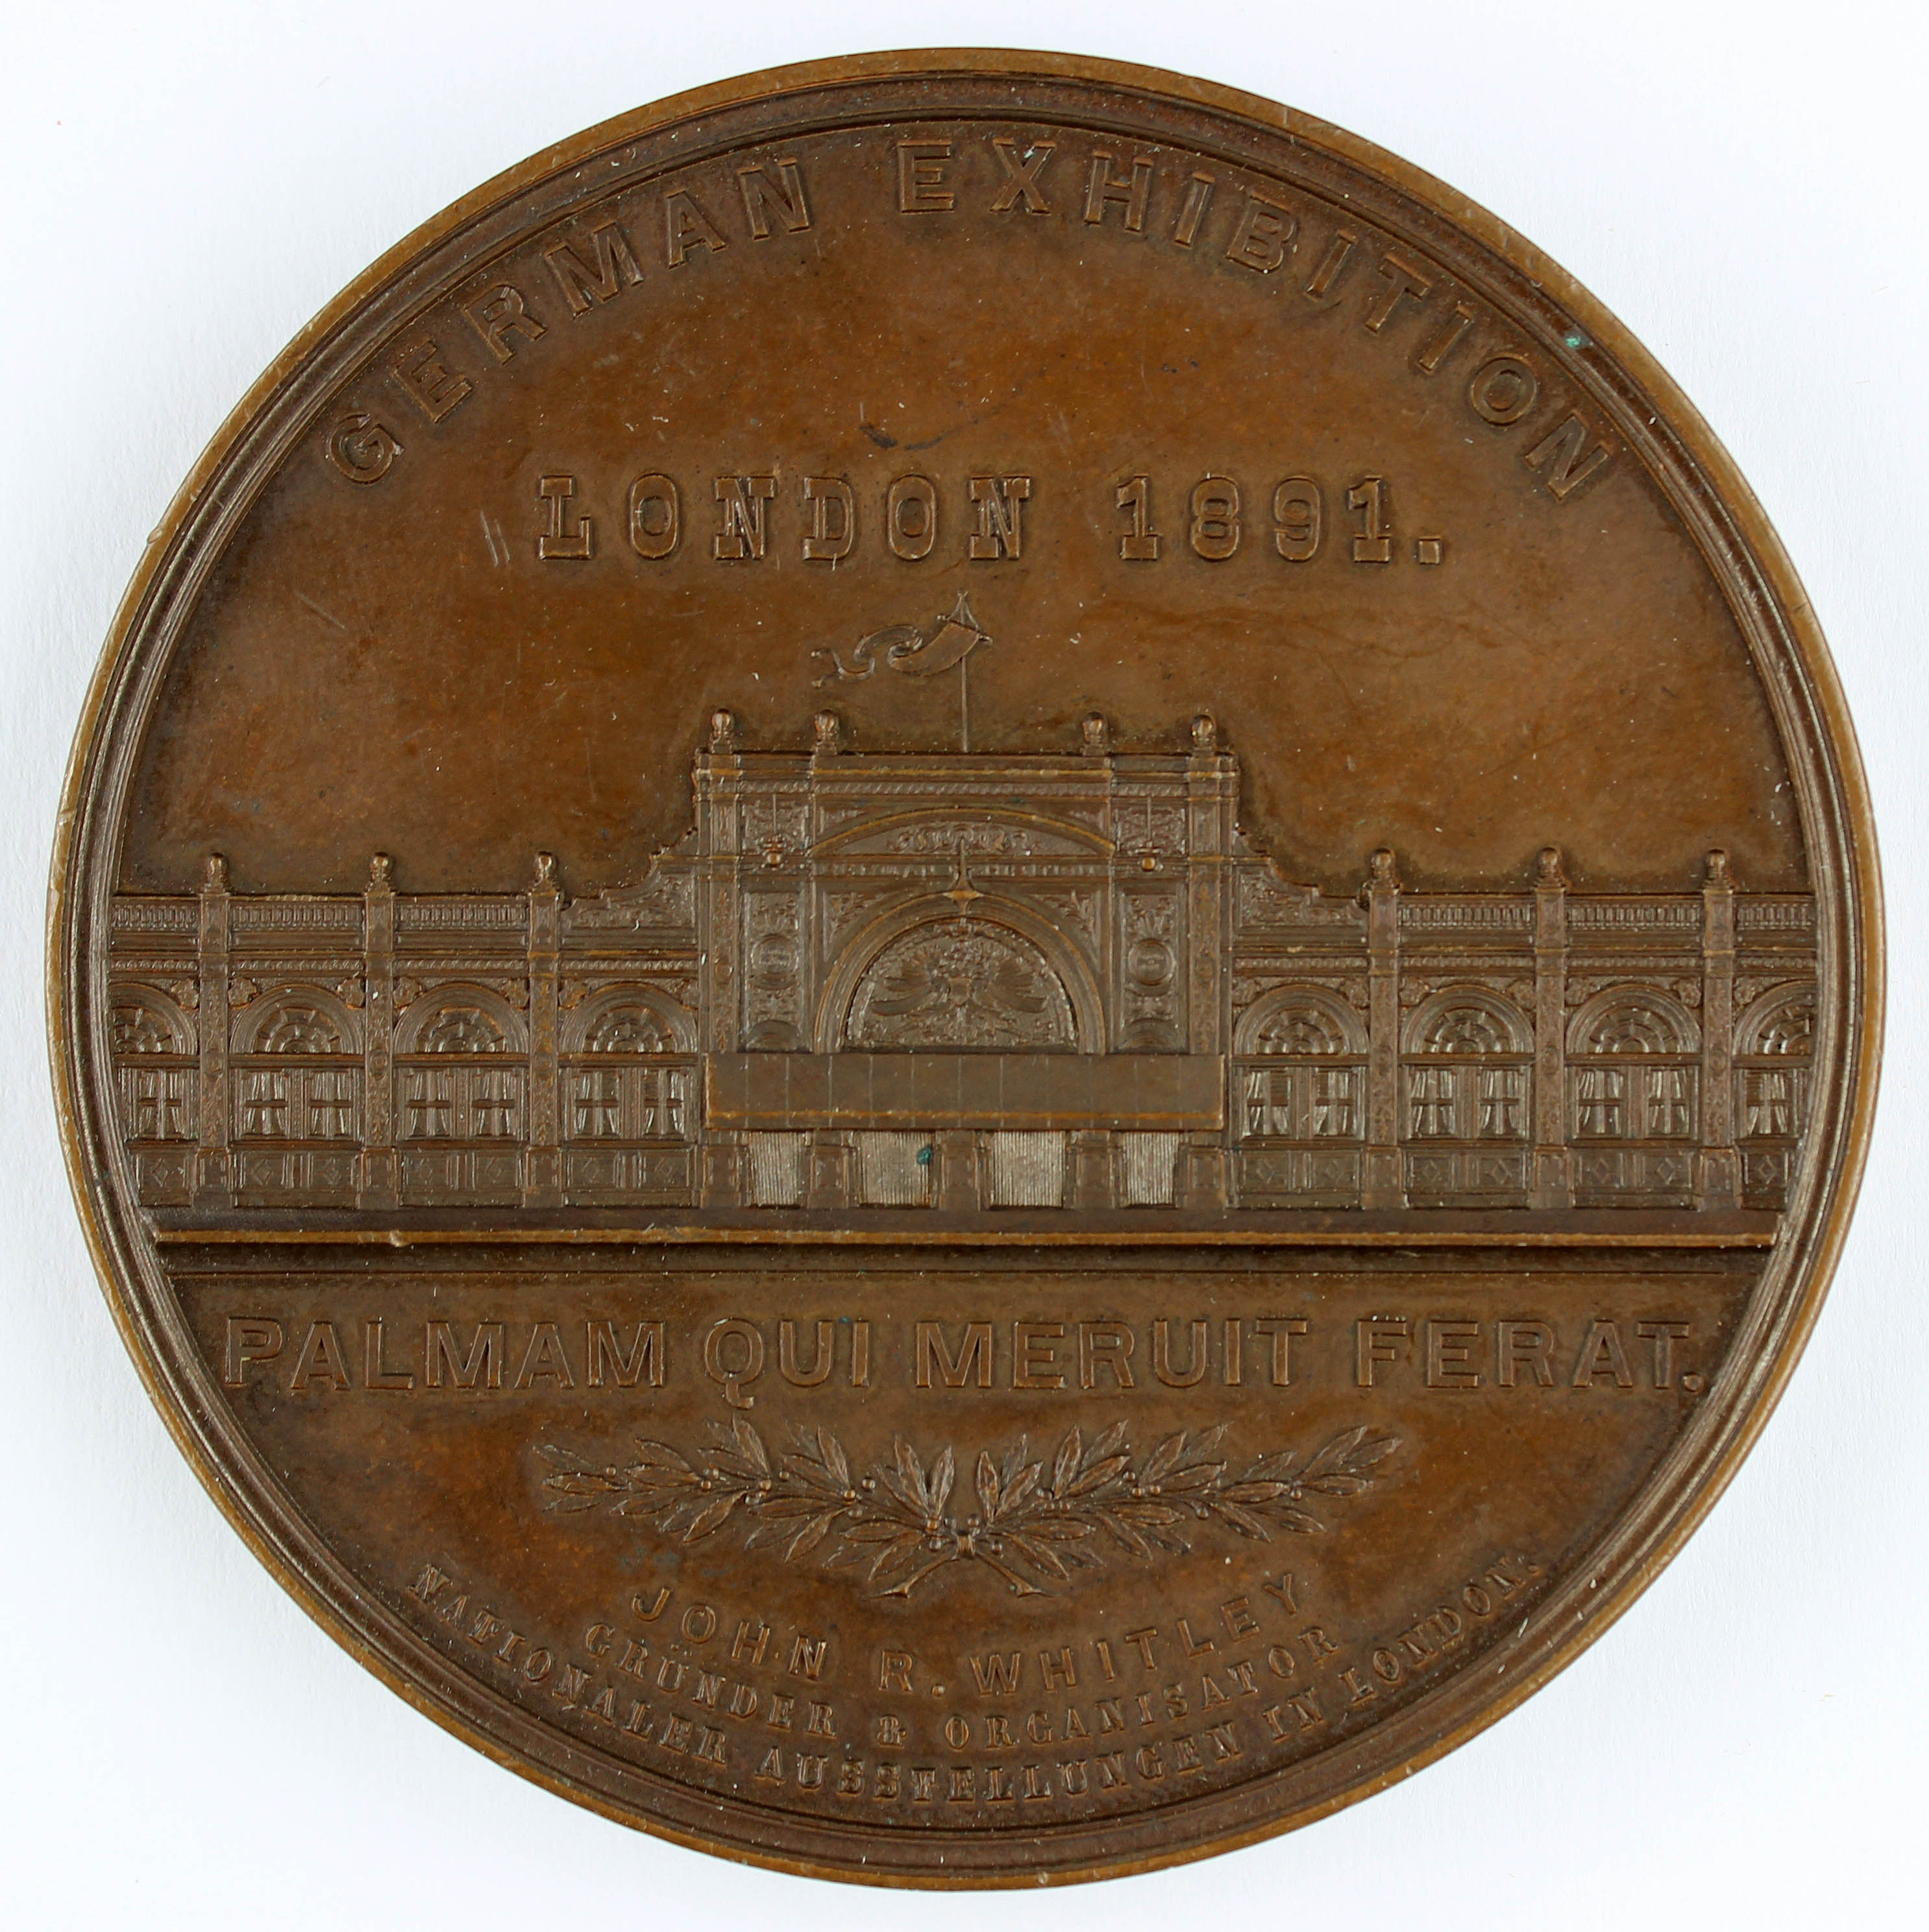 Medaille, German Exibition, 1891 (Museum Wolmirstedt RR-F)